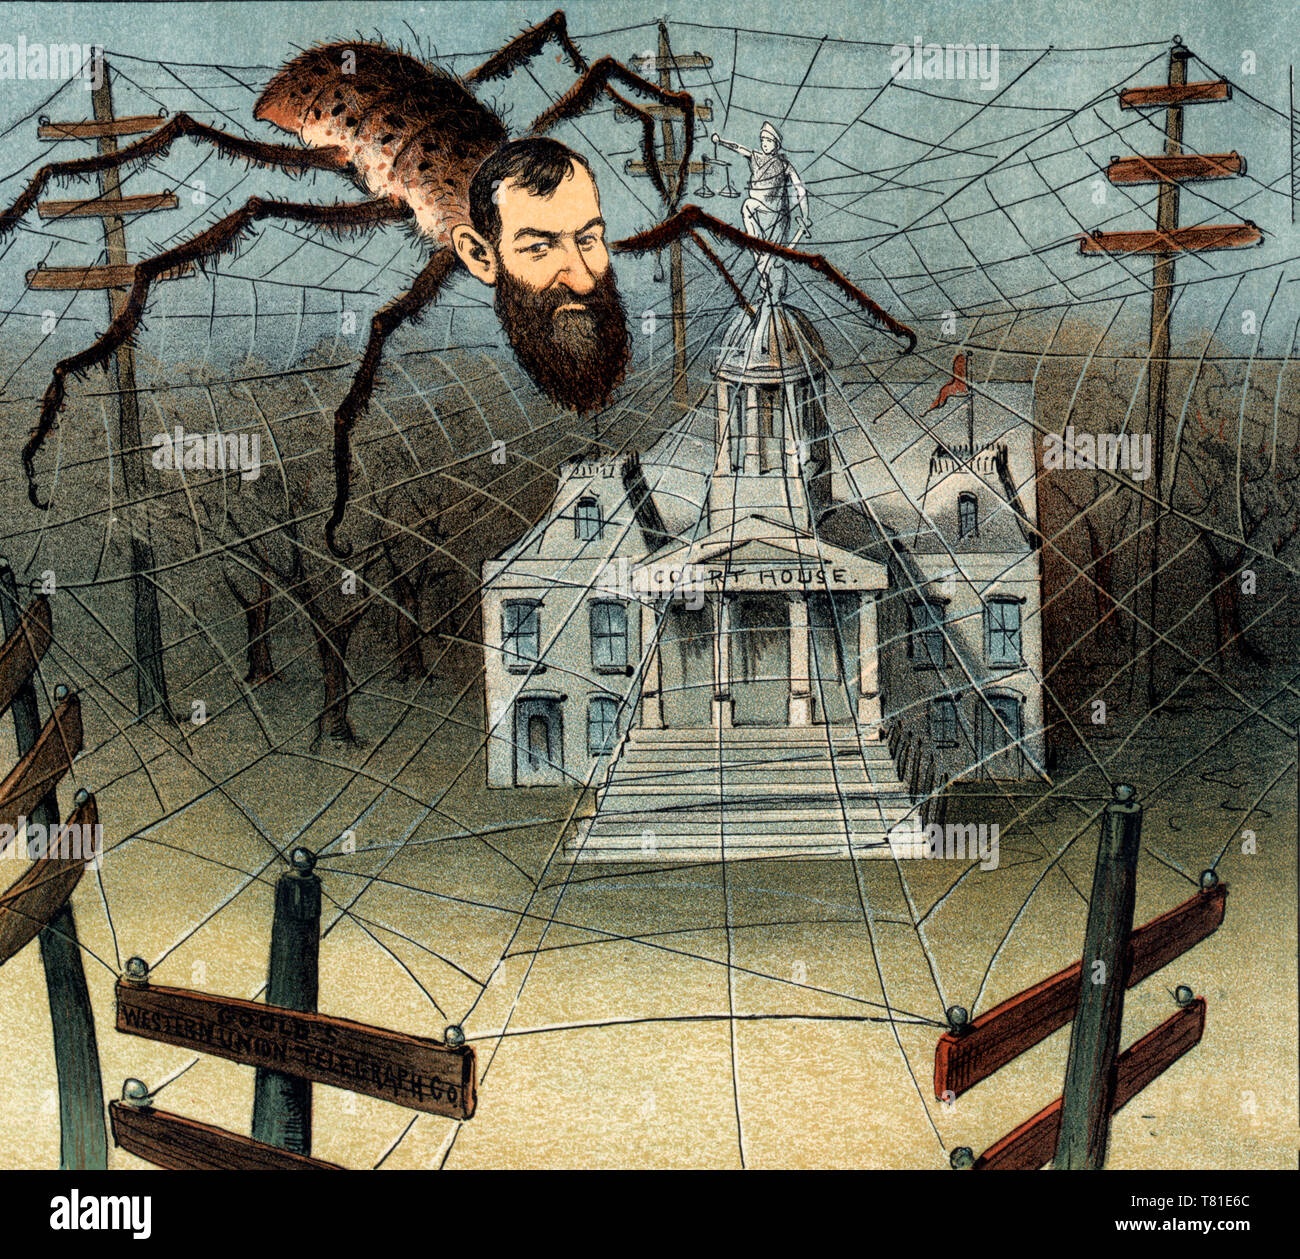 Justice in the web - Political Cartoon shows Jay Gould as a spider on a web of 'Western Union' telecommunication lines that extend from several utility poles and cover (ensnare) Justice atop a 'Courthouse'. 1885 - Stock Image